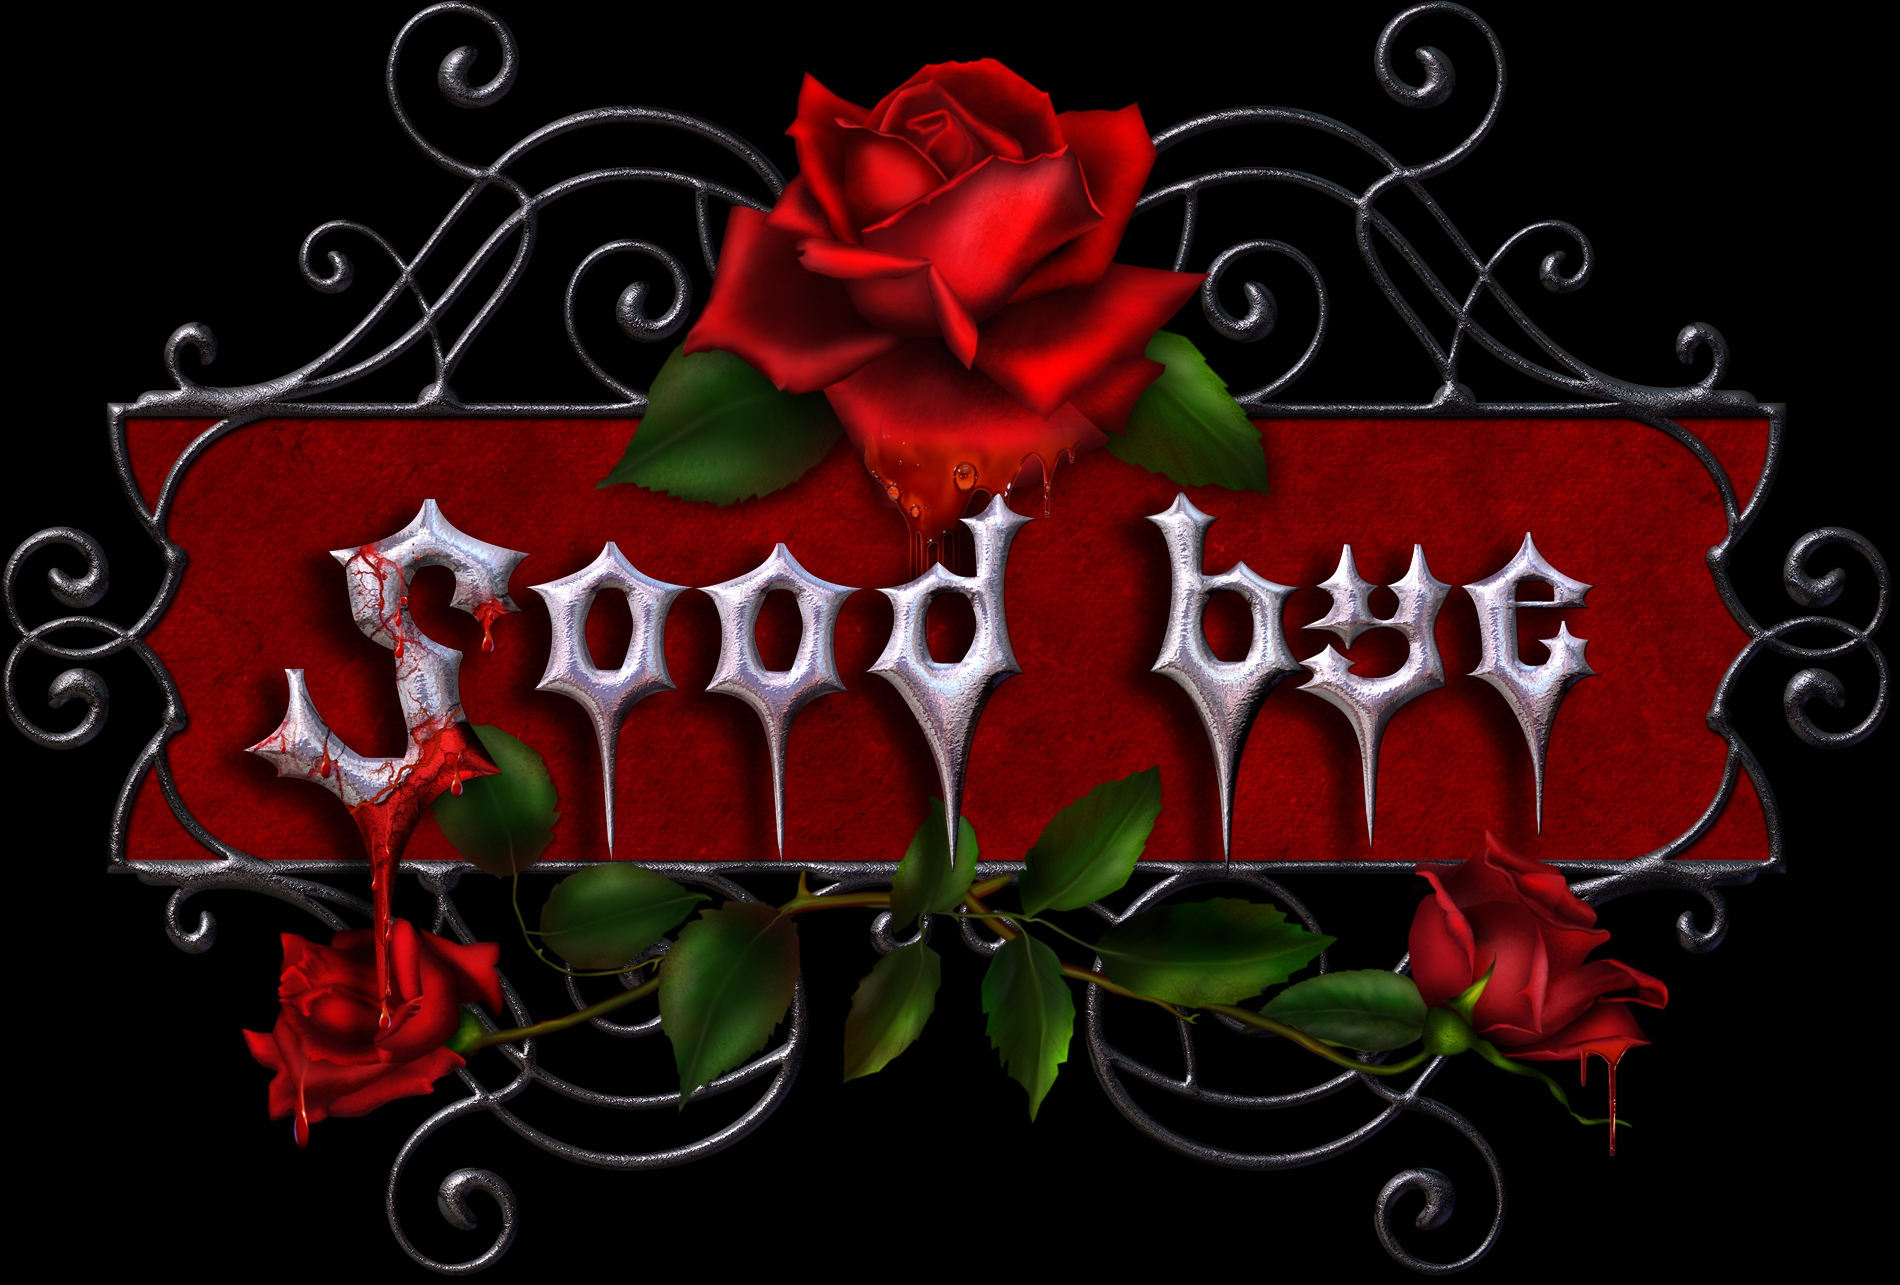 mind teasers red flower lovely clipart blood roses pretty goodbye rose ...